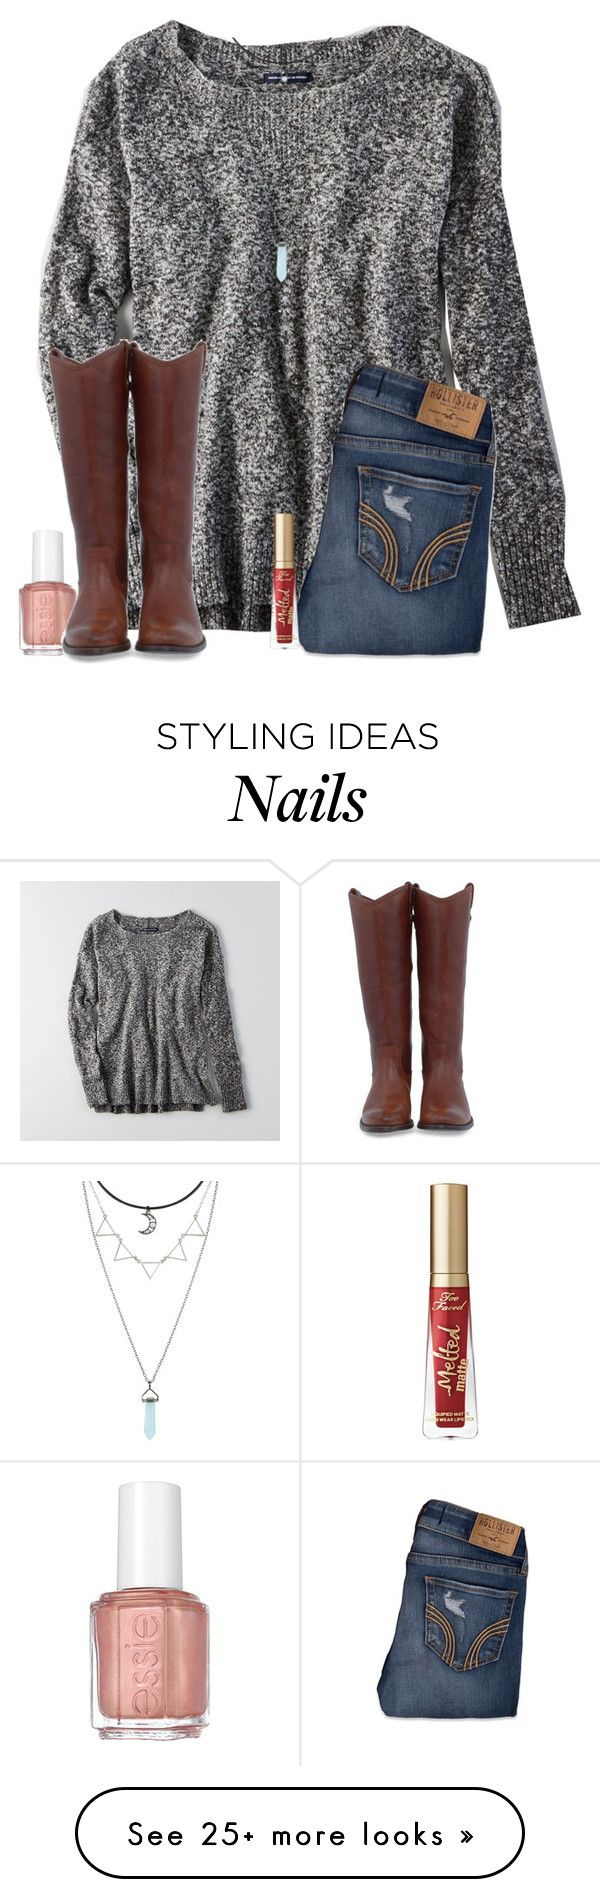 """""""Meet my new addiction: reading horoscopes on Instagram"""" by christyaphan on Polyvore featuring American Eagle Outfitters, Hollister Co., Essie, Frye and Too Faced Cosmetics"""